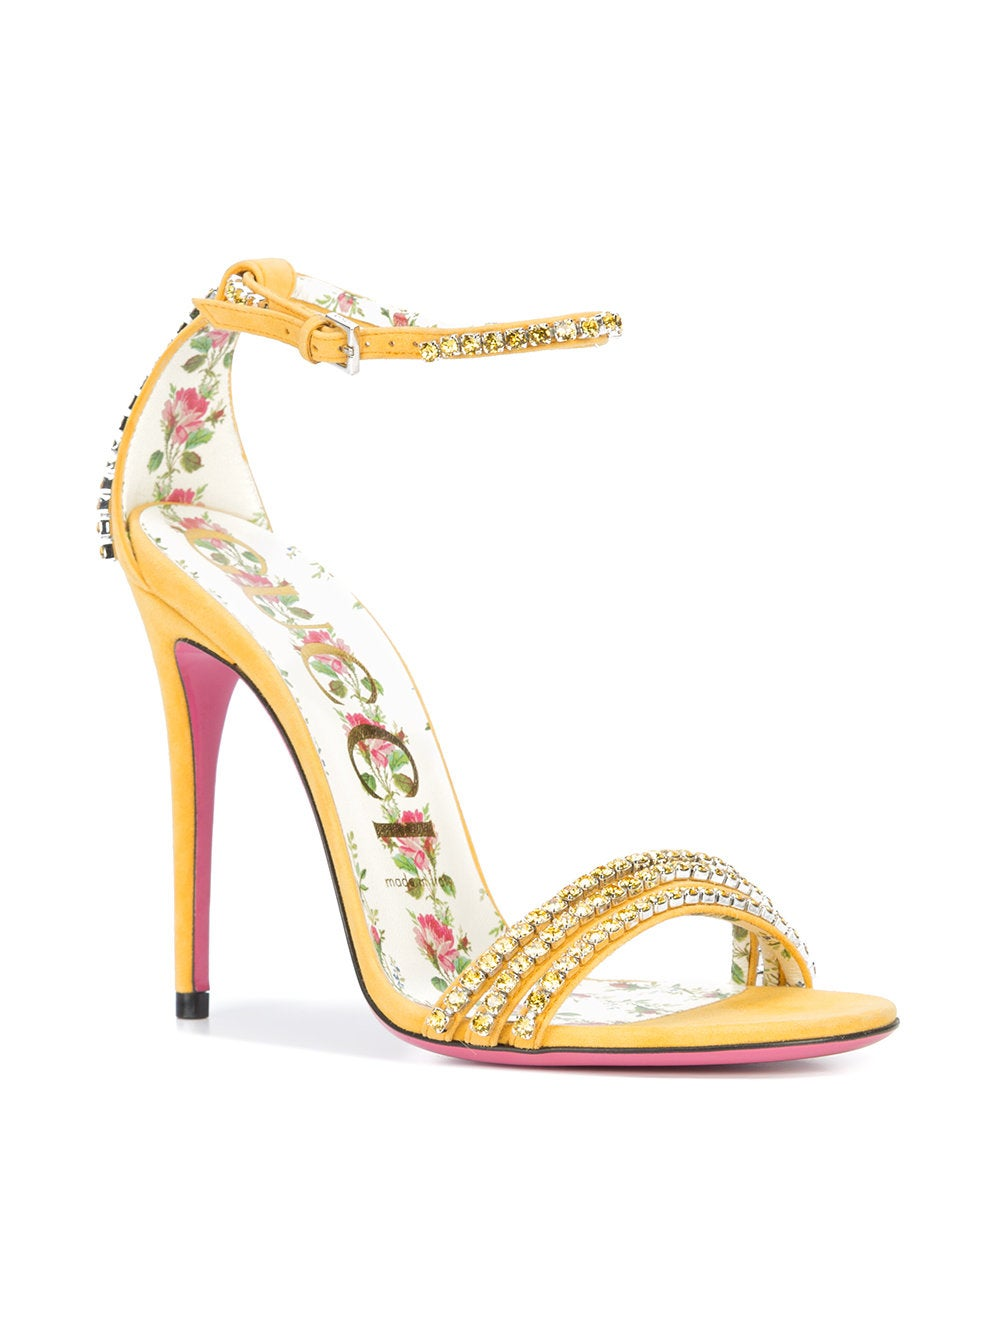 2596d5fd7 Skip to the beginning of the images gallery. You May Also Like; Recently  Viewed. Gucci - Crystal Embellished Sandals ...